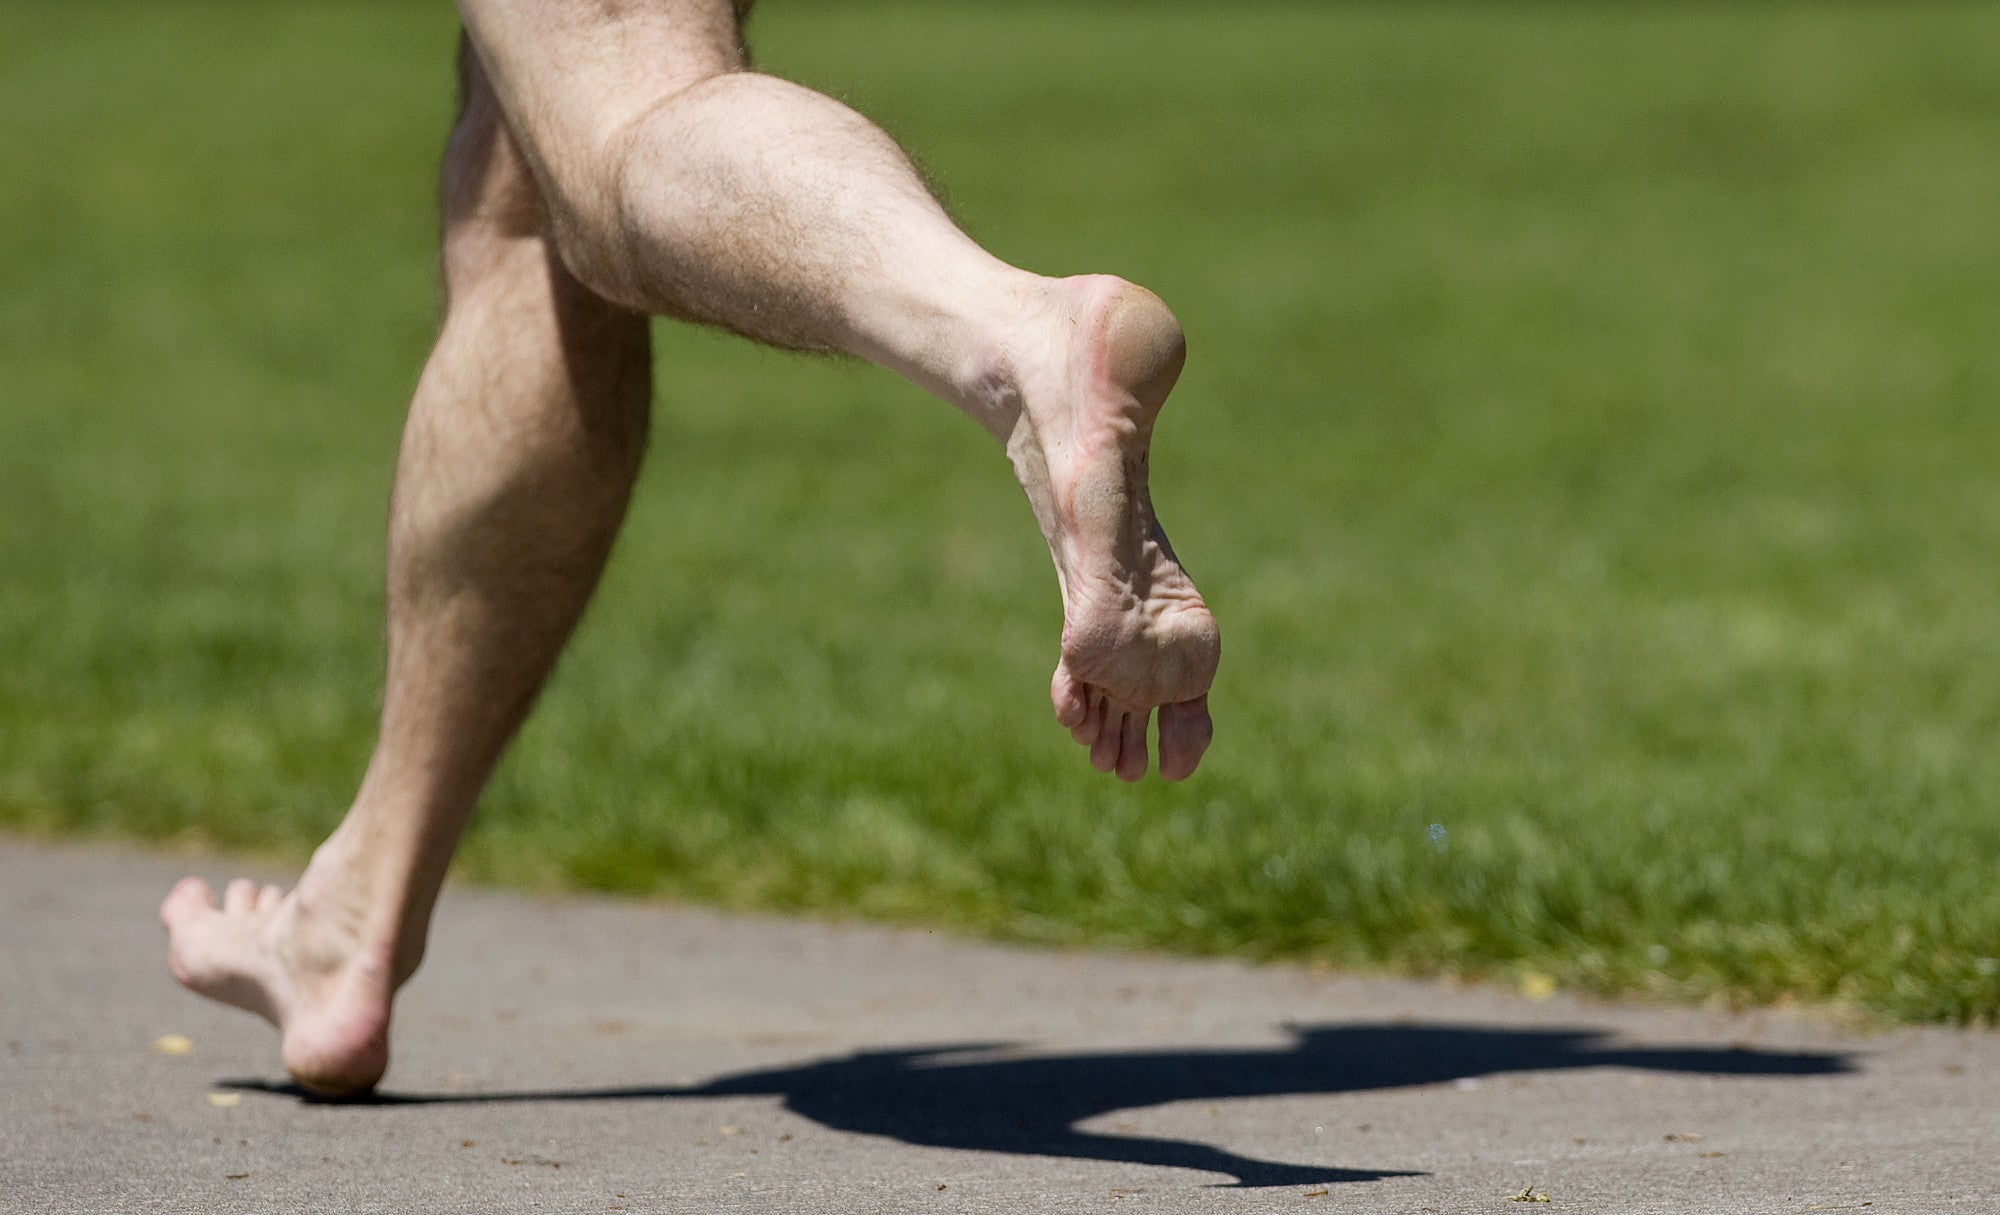 <a href= http://www.plantarfasciitisinfo.com/barefootminimalist-running/>TOP 3 THINGS TO KNOW ABOUT BAREFOOT/MINIMALIST RUNNING</a>